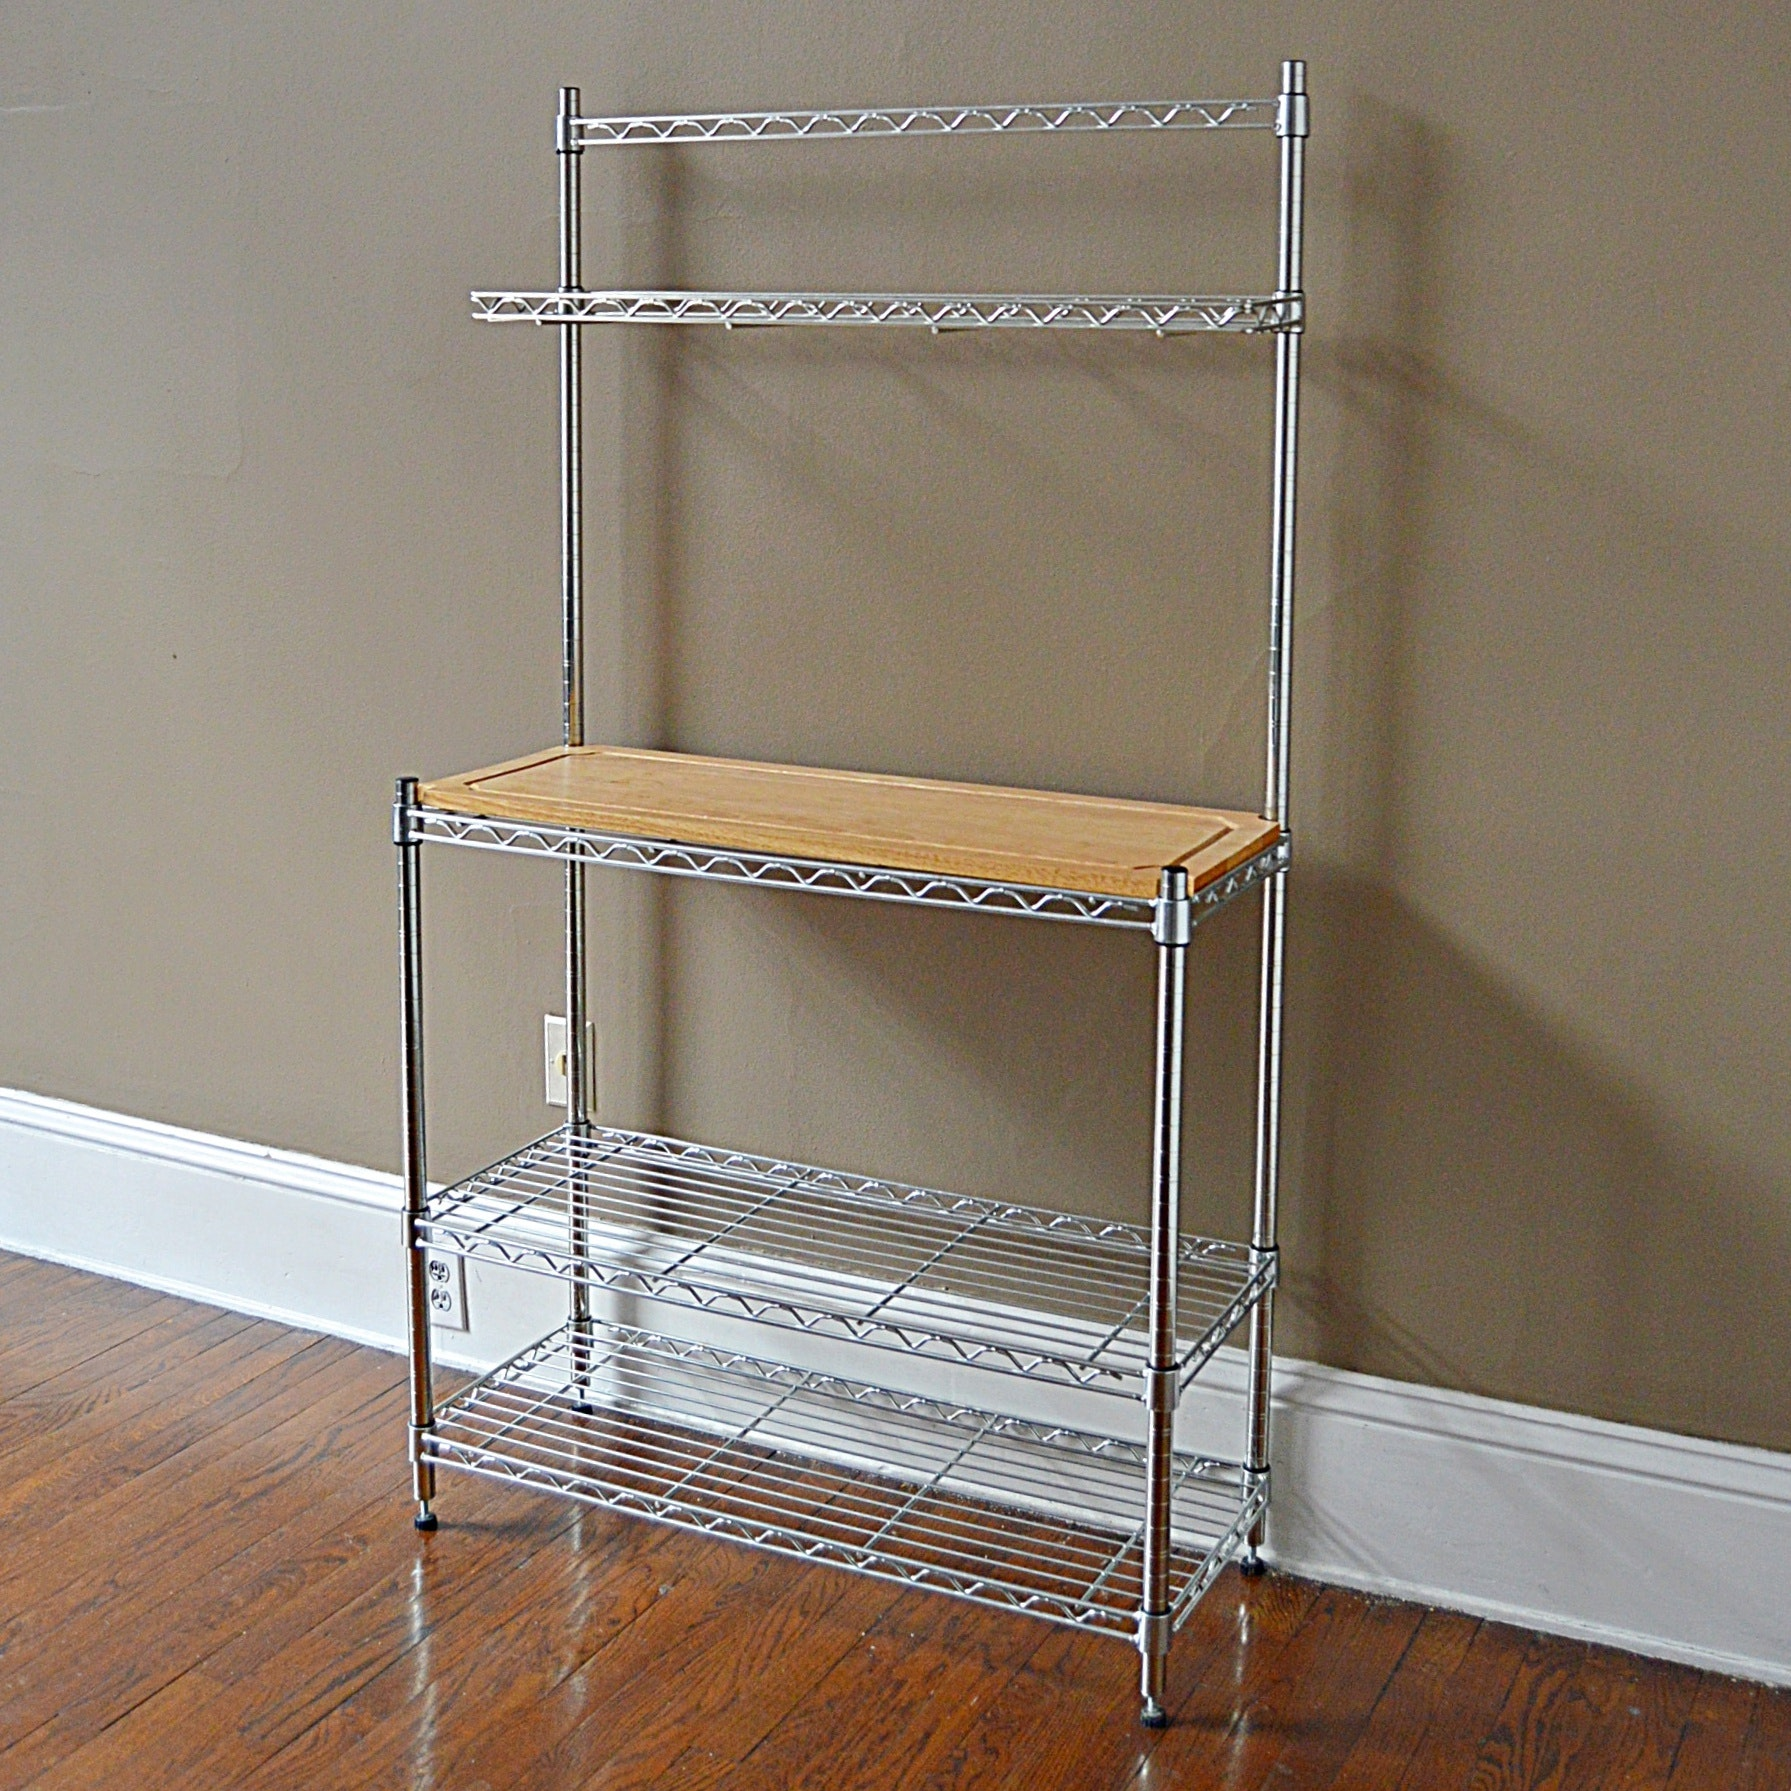 Contemporary Industrial Chrome Shelving Unit with Wood Shelf